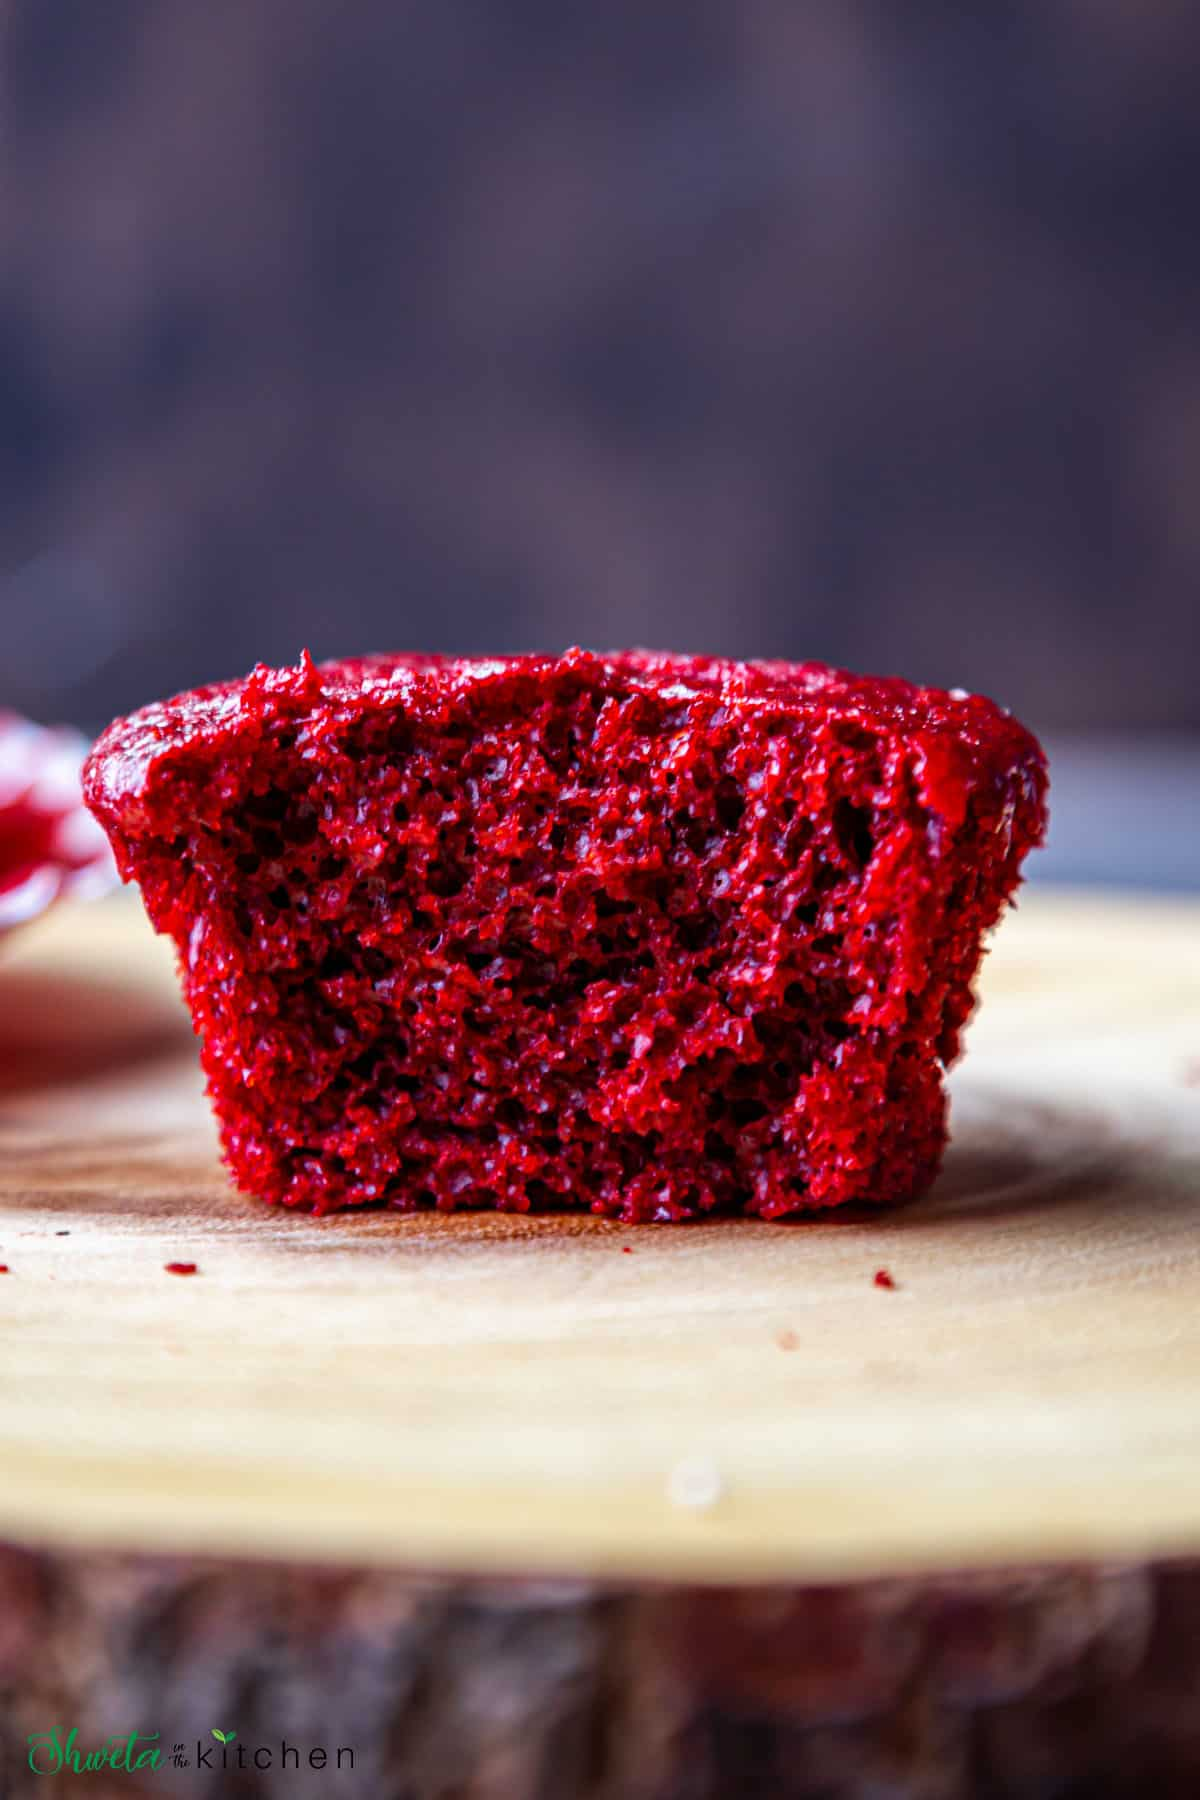 eggless Red velvet cupcake cut in half showing the crumb texture